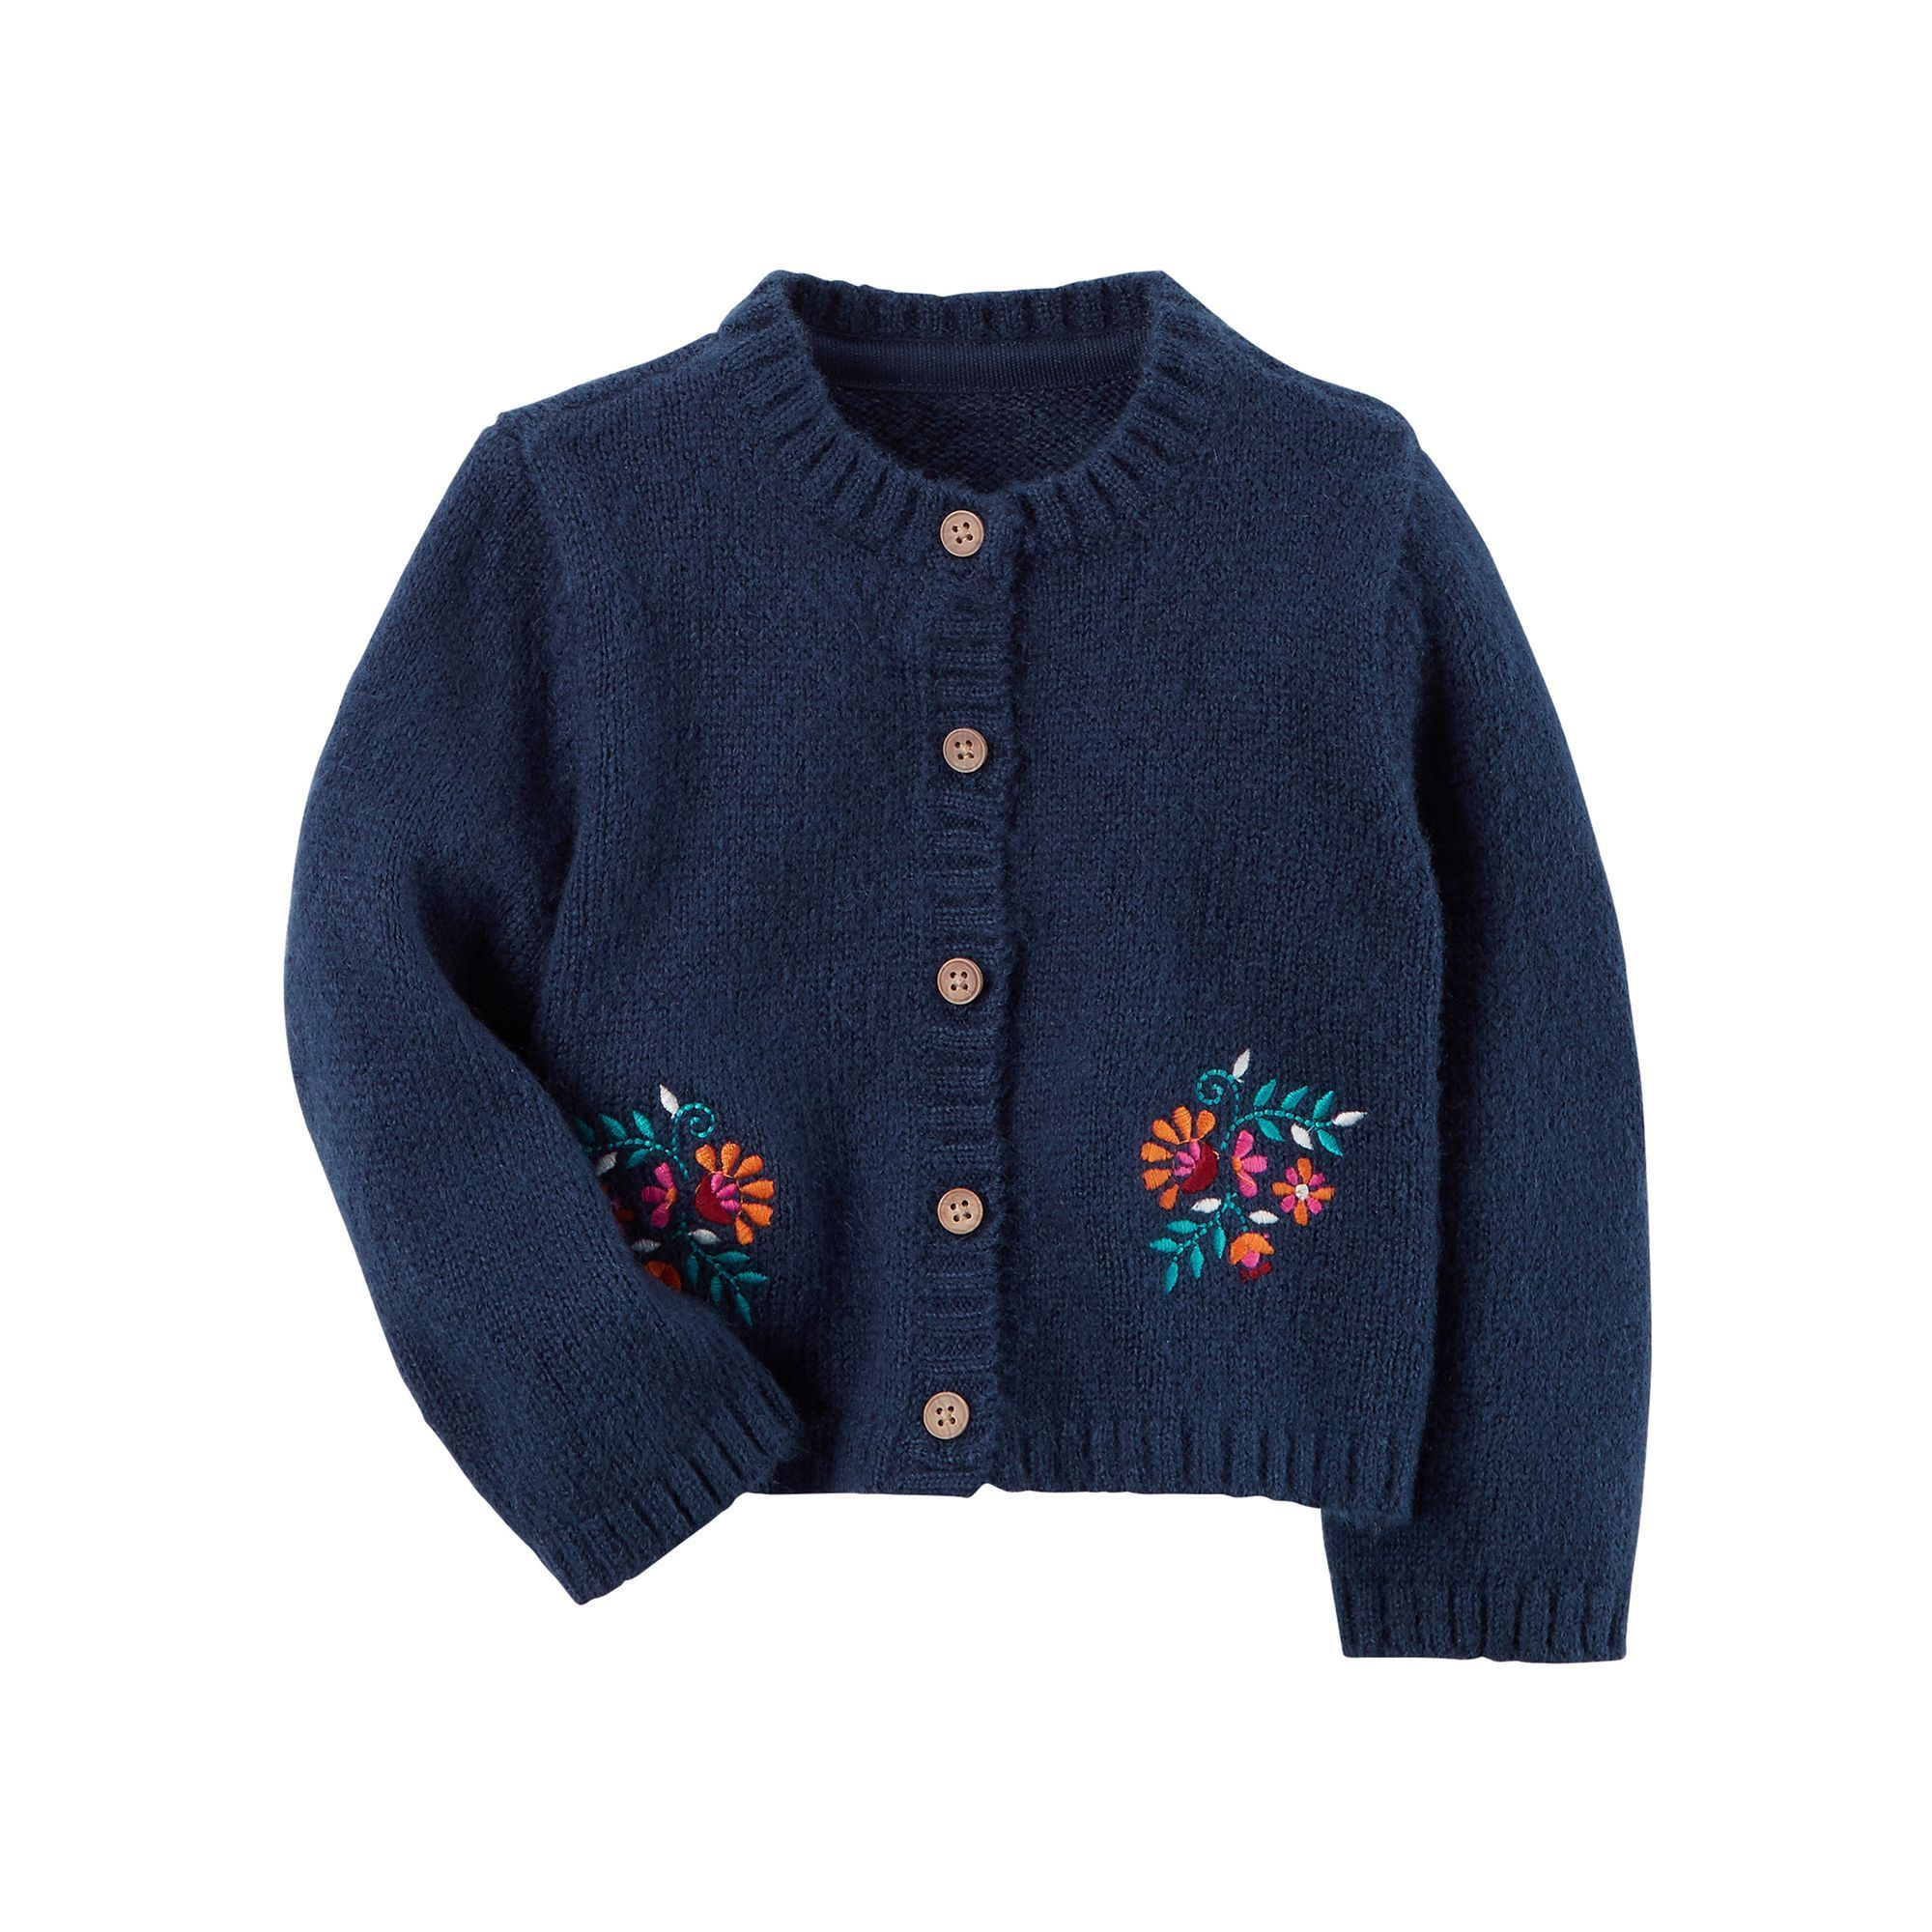 4d9b934609d1 Baby Girl Carter's Floral Embroidered Cardigan in 2019   Products ...